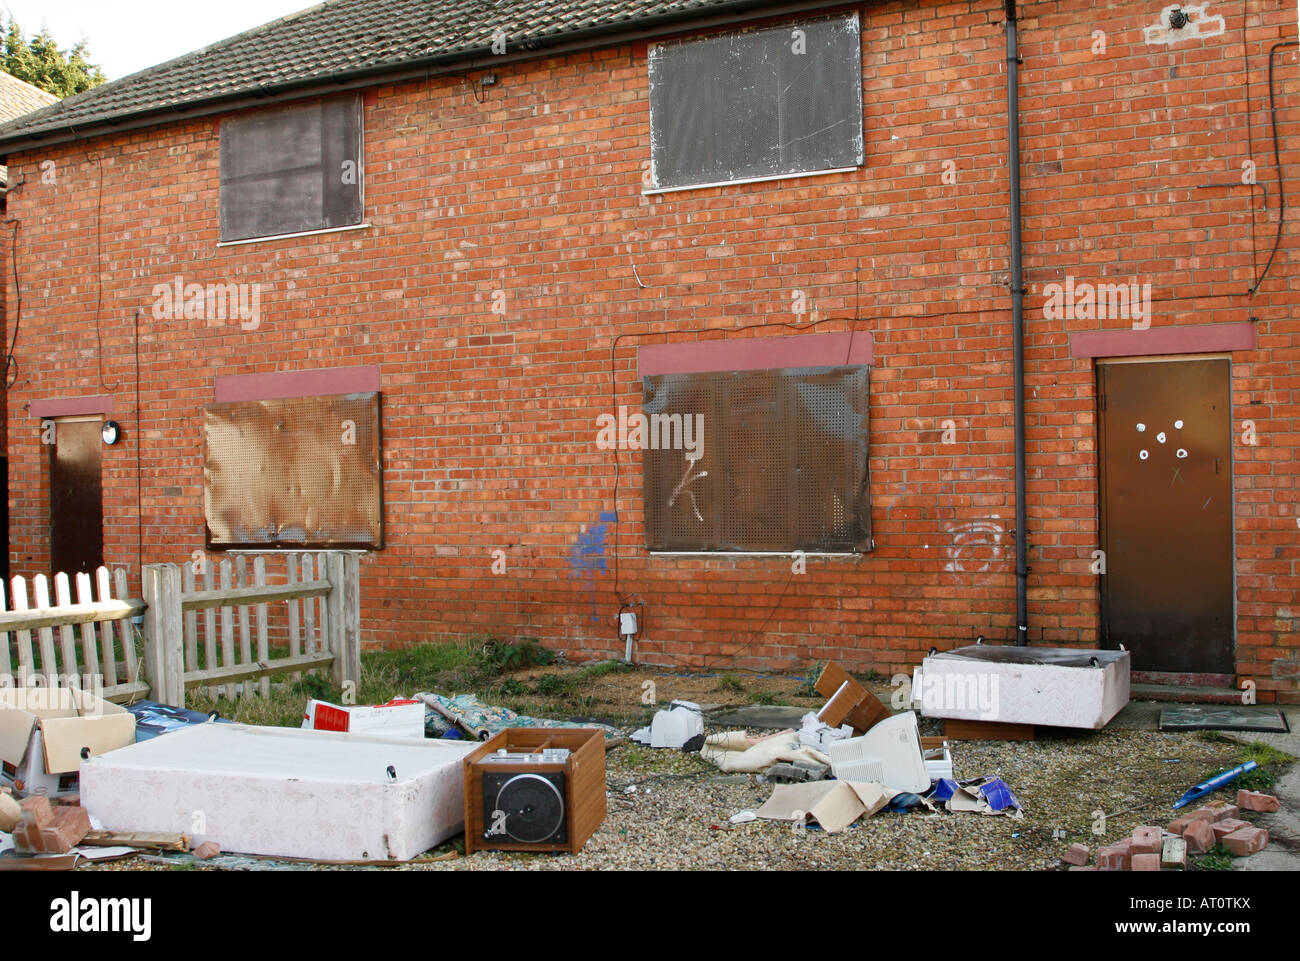 Boarded up council housing awaiting demolition in St. Pauls, Cheltenham, UK - Stock Image